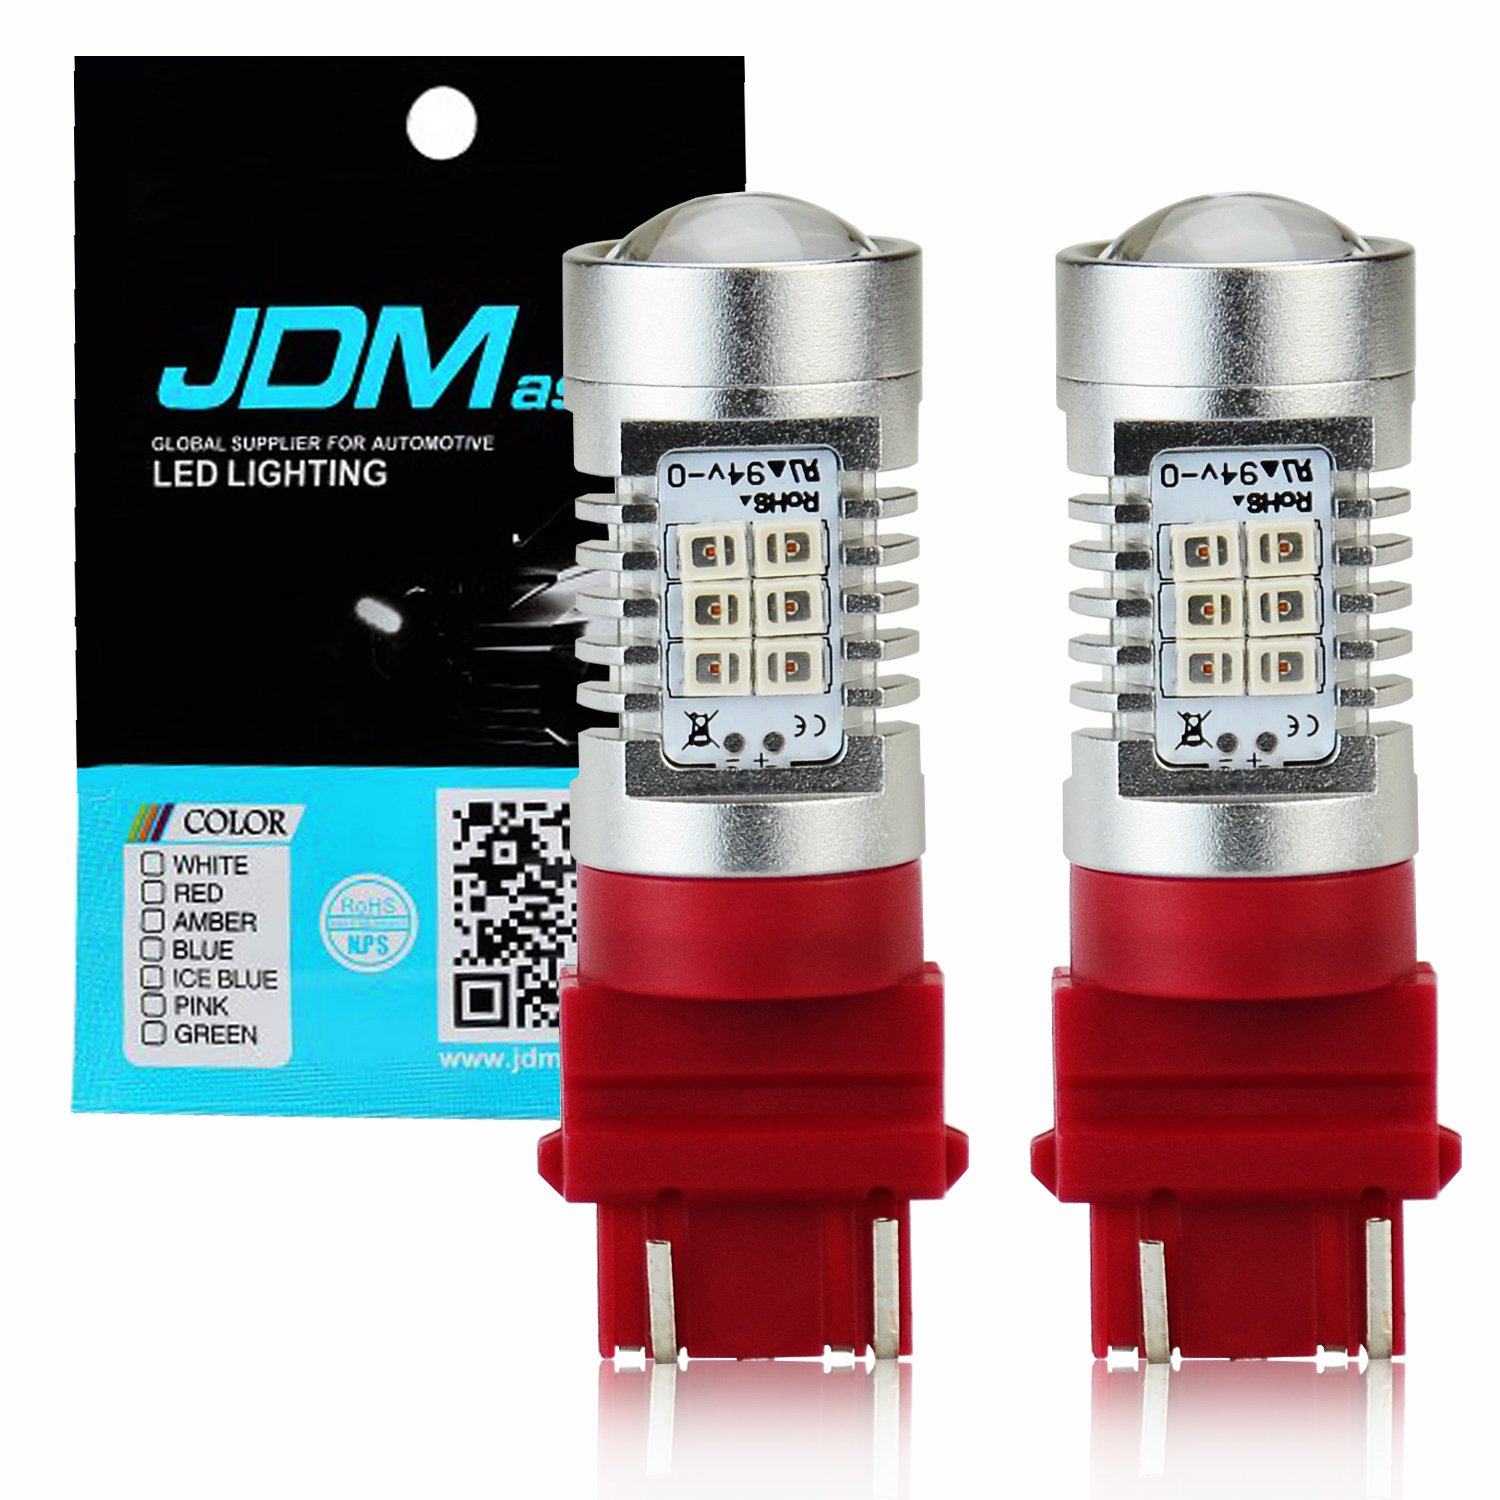 JDM ASTAR 800 lumens Extremely Bright Error Free 921 912 PX Chipsets LED Bulbs For Backup Reverse Lights, Xenon White JDM ASTAR-PX921-15W